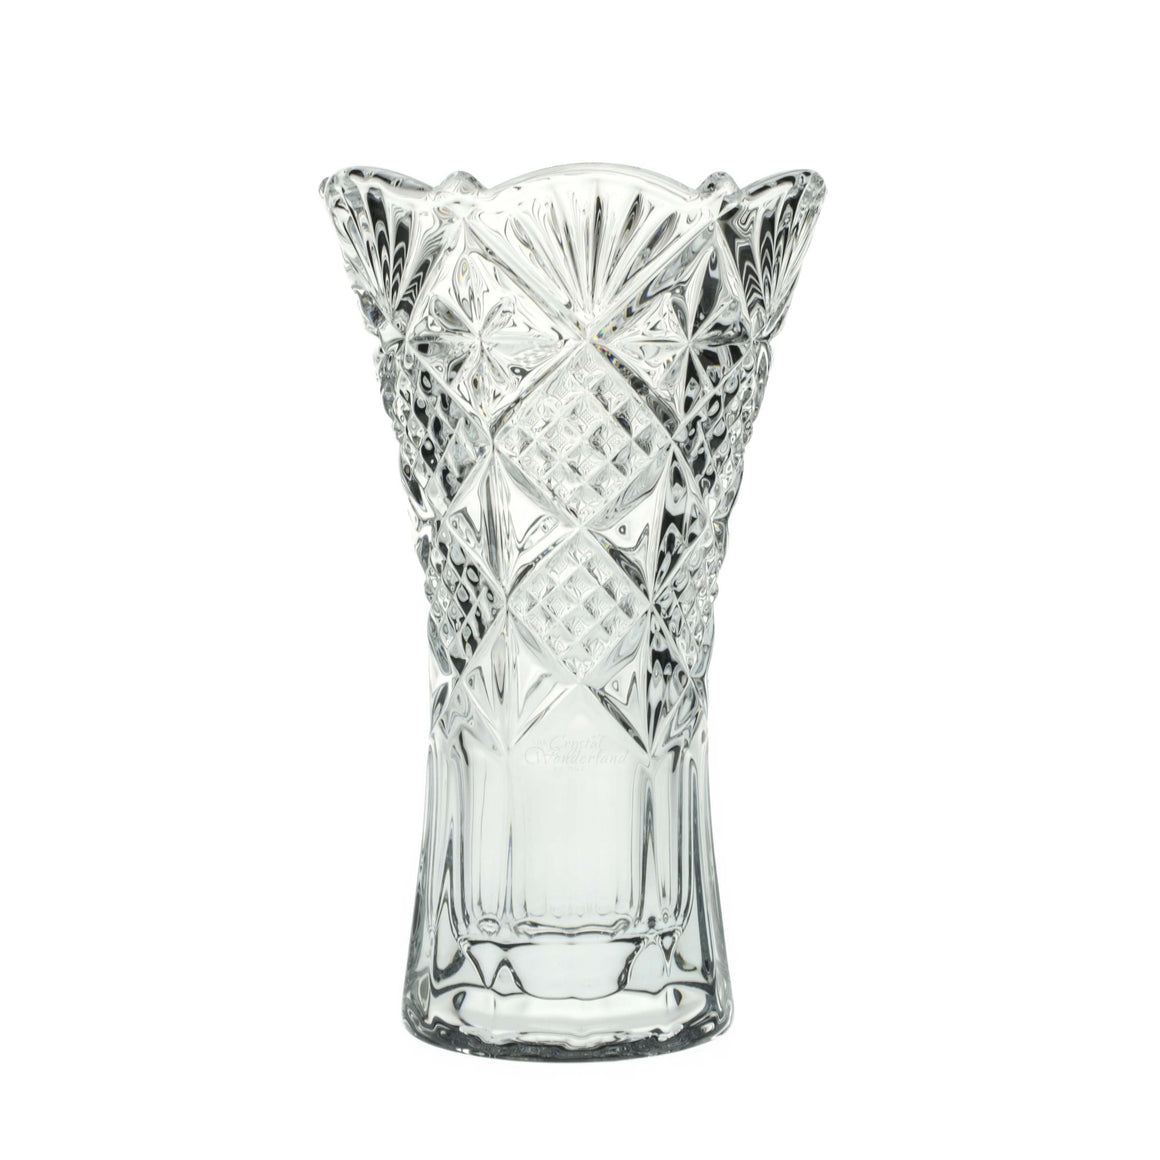 Moana Vase - The Crystal Wonderland